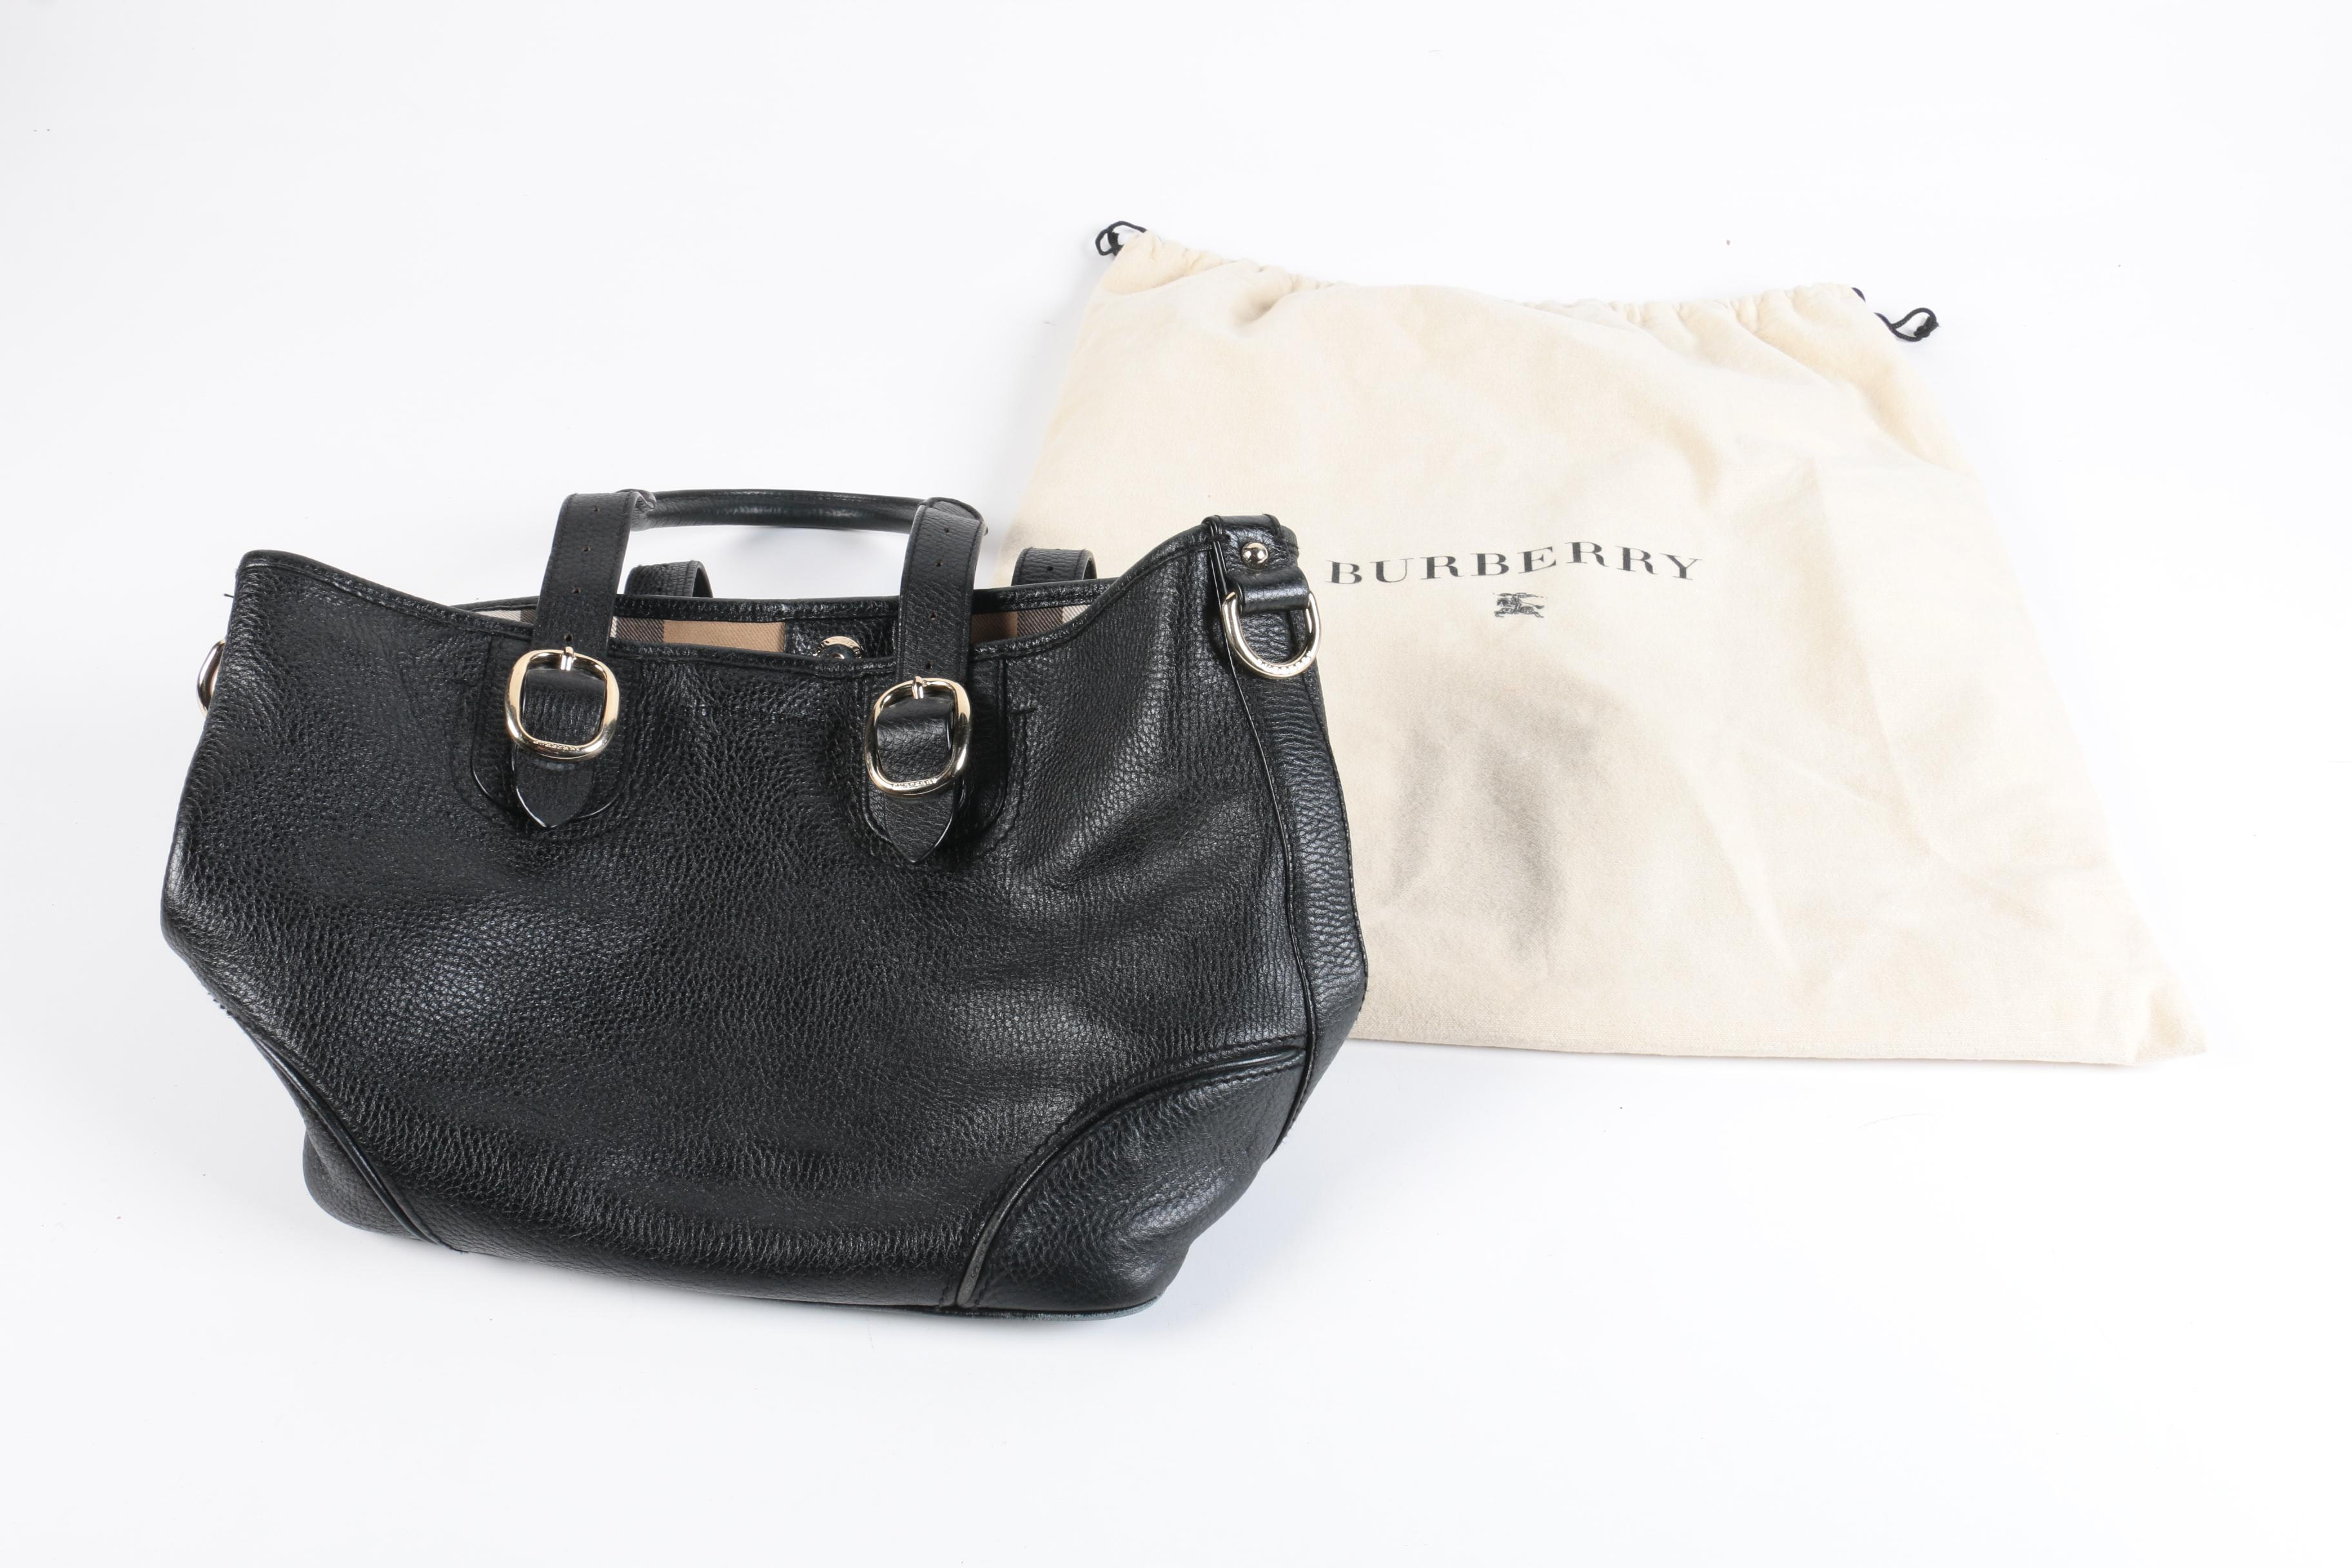 Burberry Black Pebbled Leather Handbag